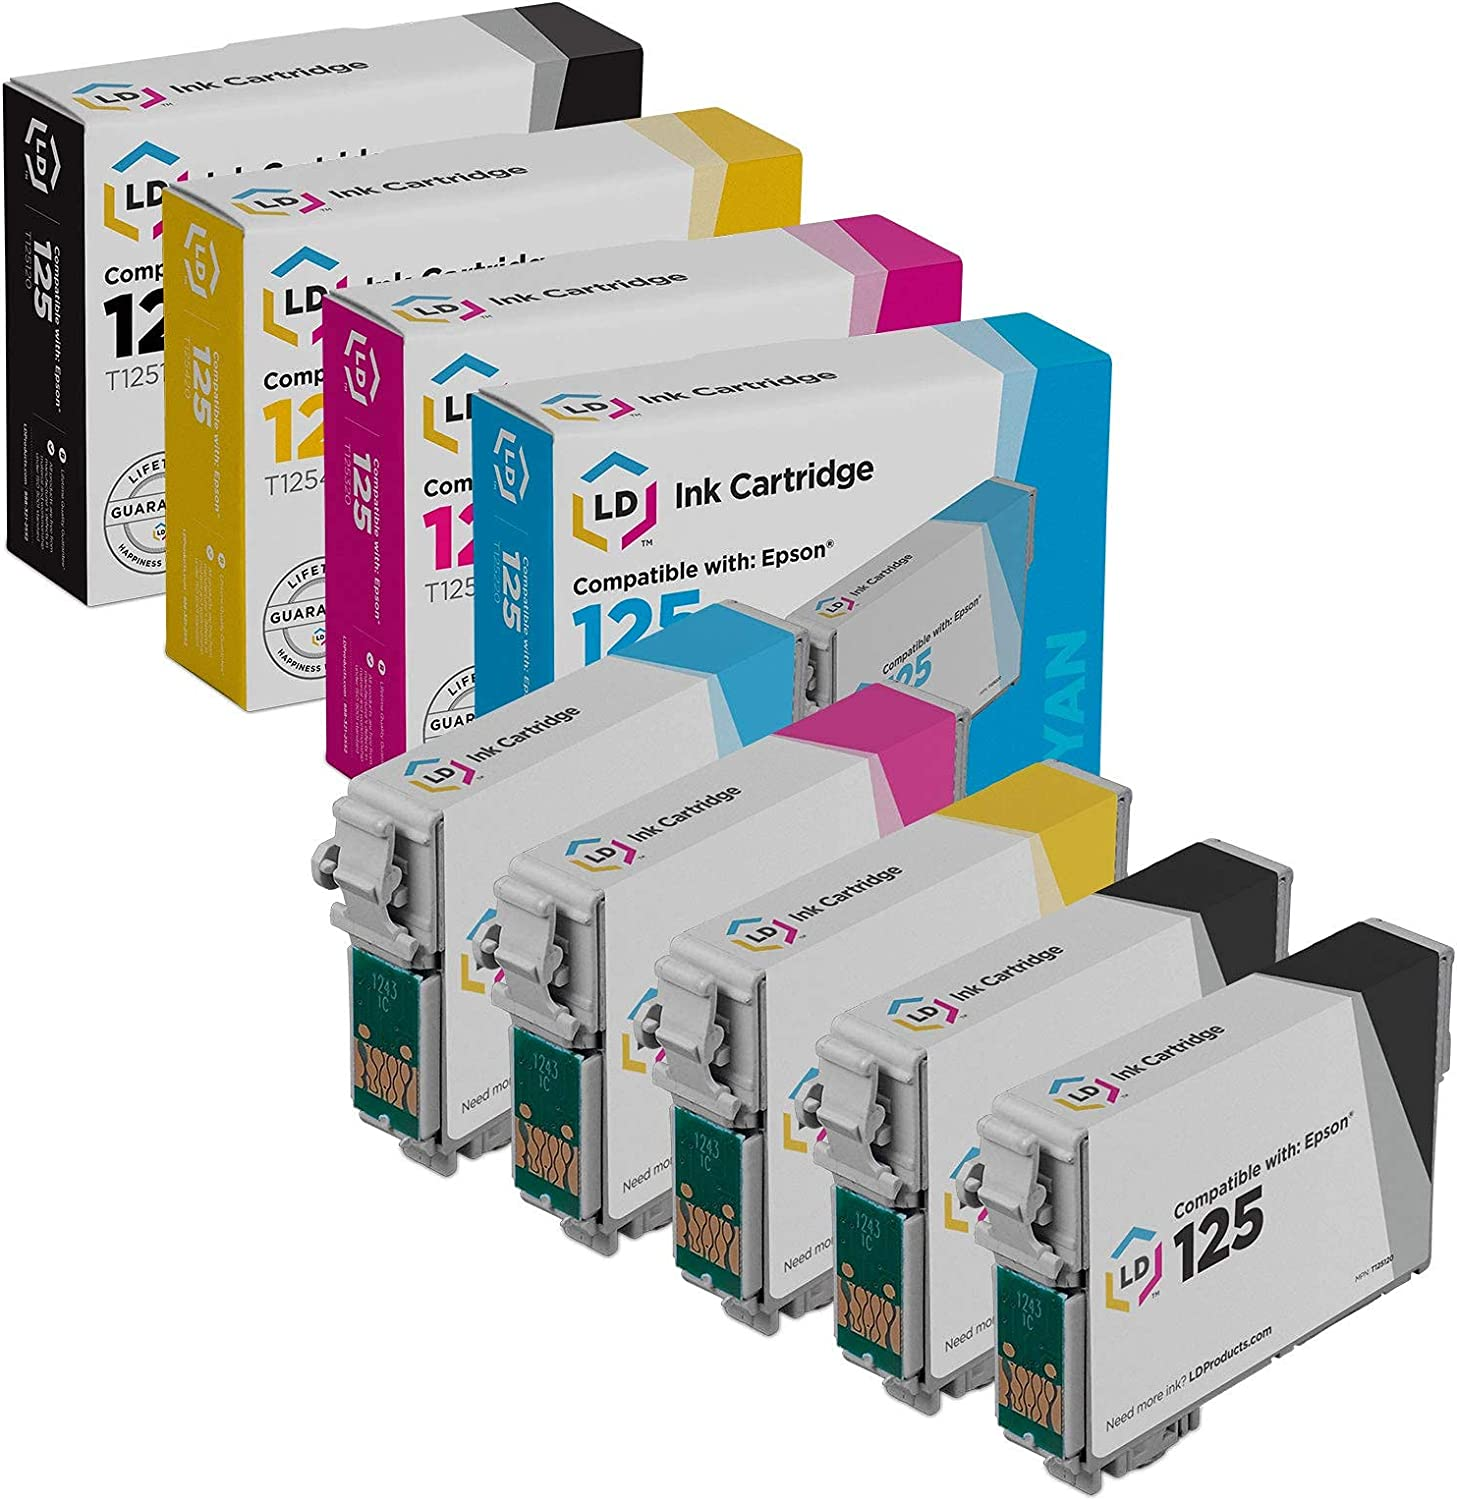 LD Remanufactured Replacement for Epson 125 (2 Black, 1 Cyan, 1 Magenta, 1 Yellow, 5-Pack)